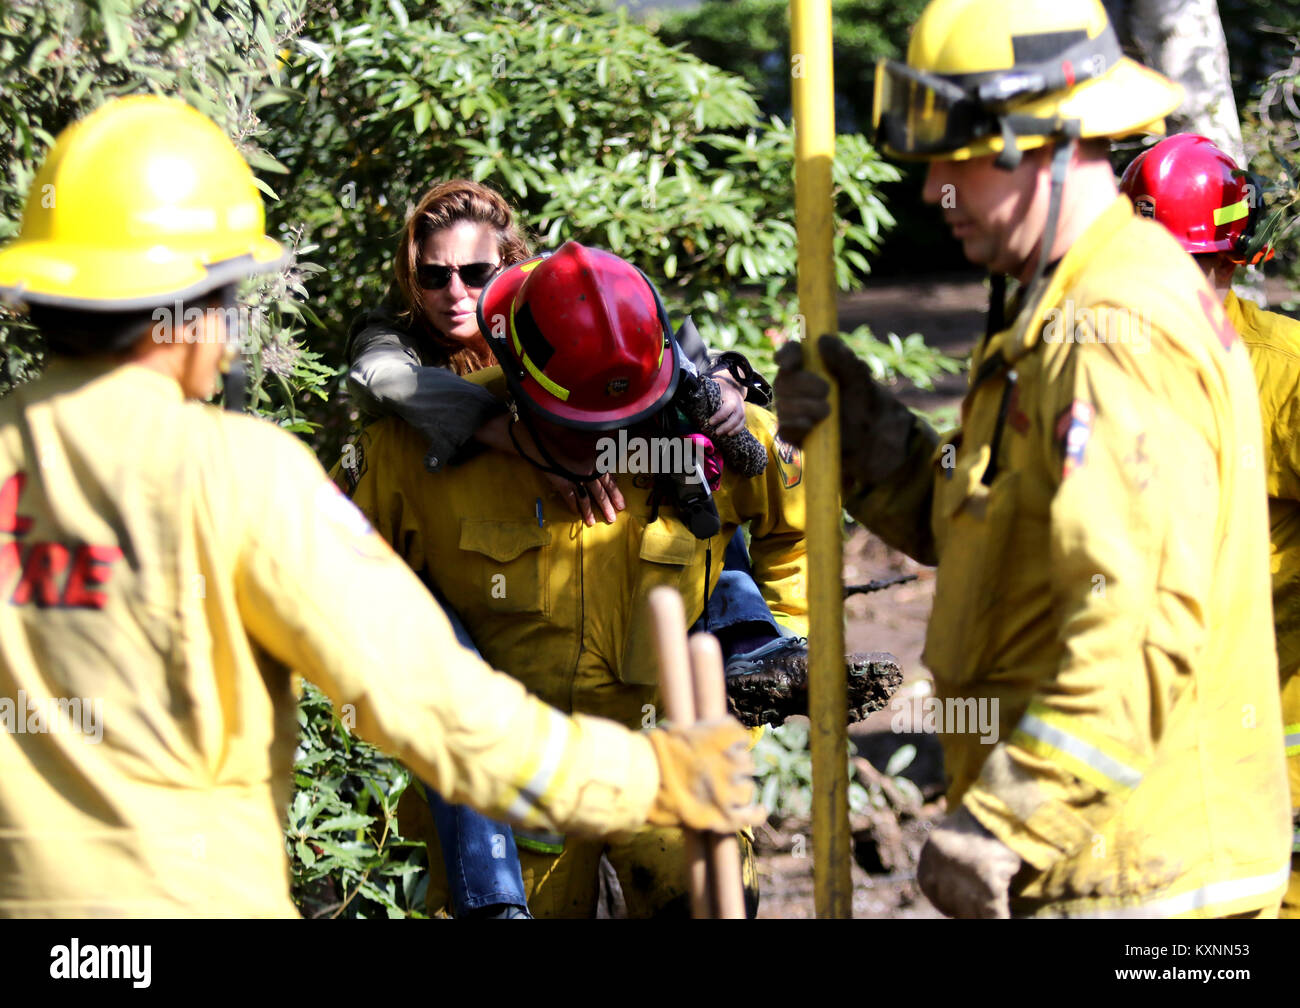 Montecito, California, USA. 10th Jan, 2018. Cal Fire carries a woman through mud and debris along Olive Mill Rd - Stock Image